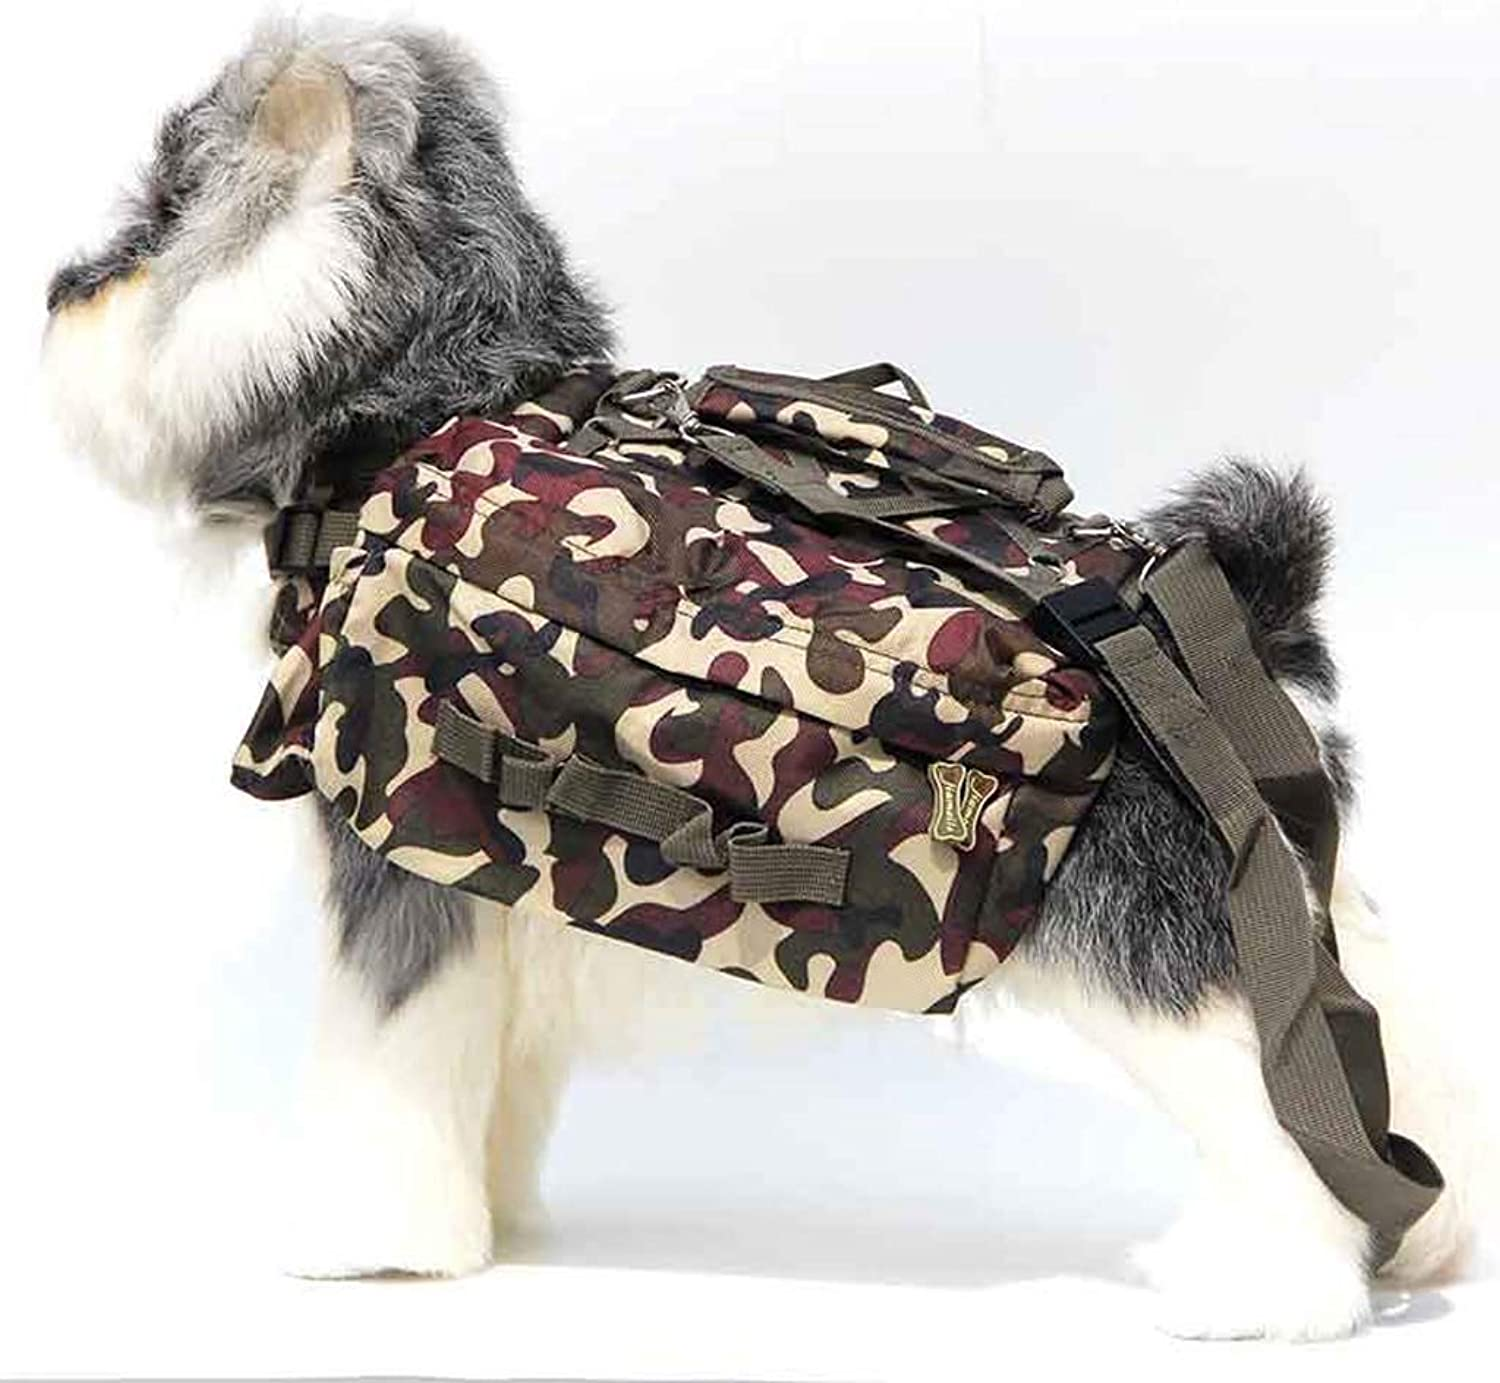 Dog Saddle bag Durable Waterproof Tactical Breathable Pet Chest Strap Dog Harness Backpack for Traveling Hiking Camping, Medium Size